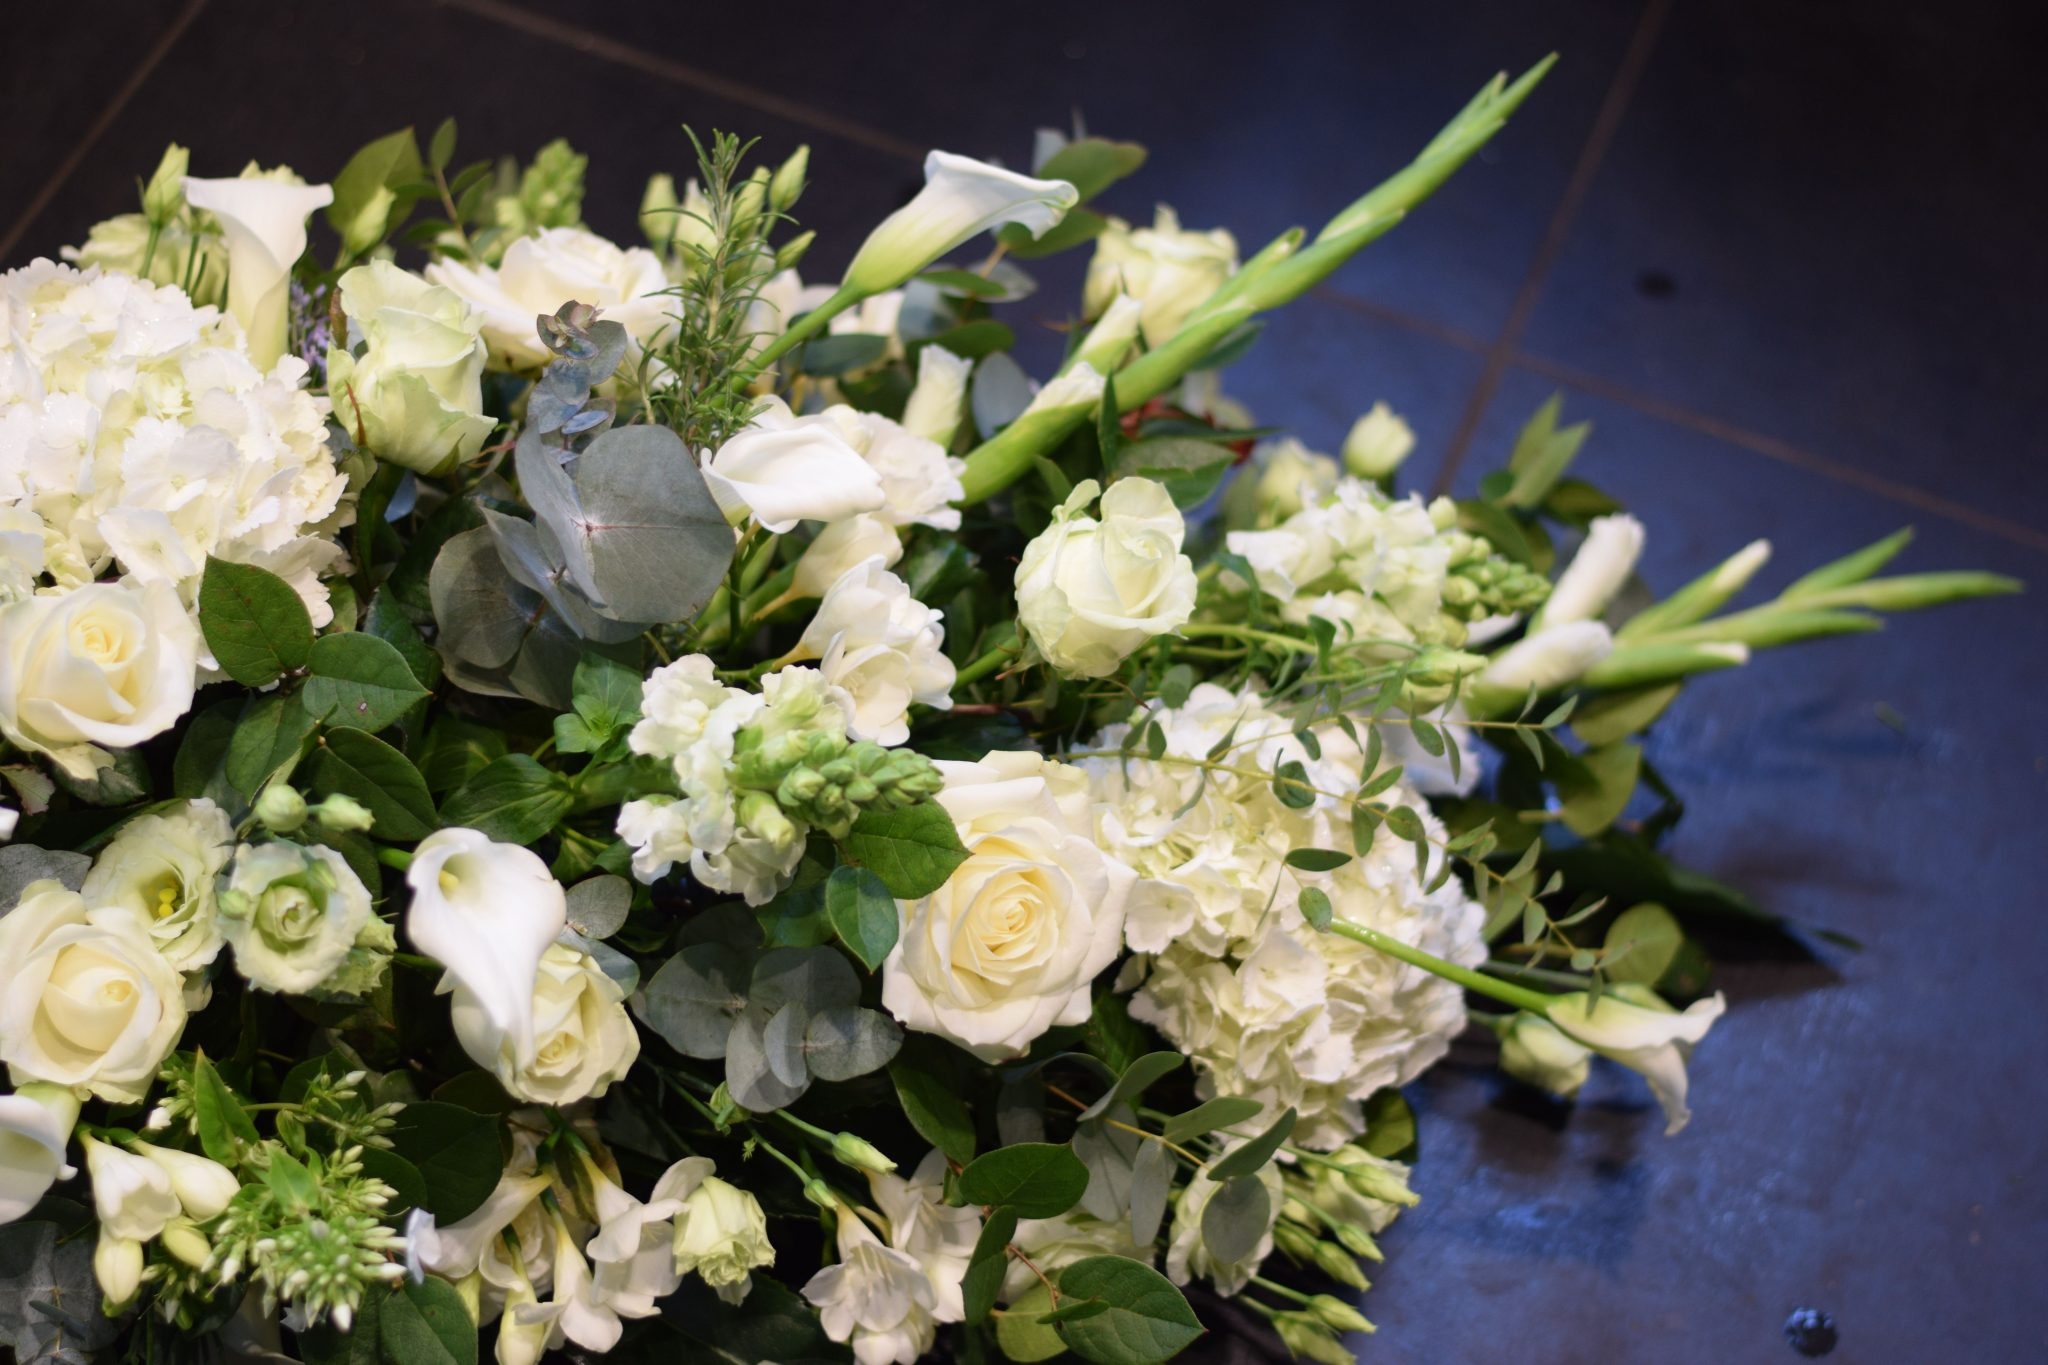 Funeral Flowers Spray Arrangement Kensington Flowers